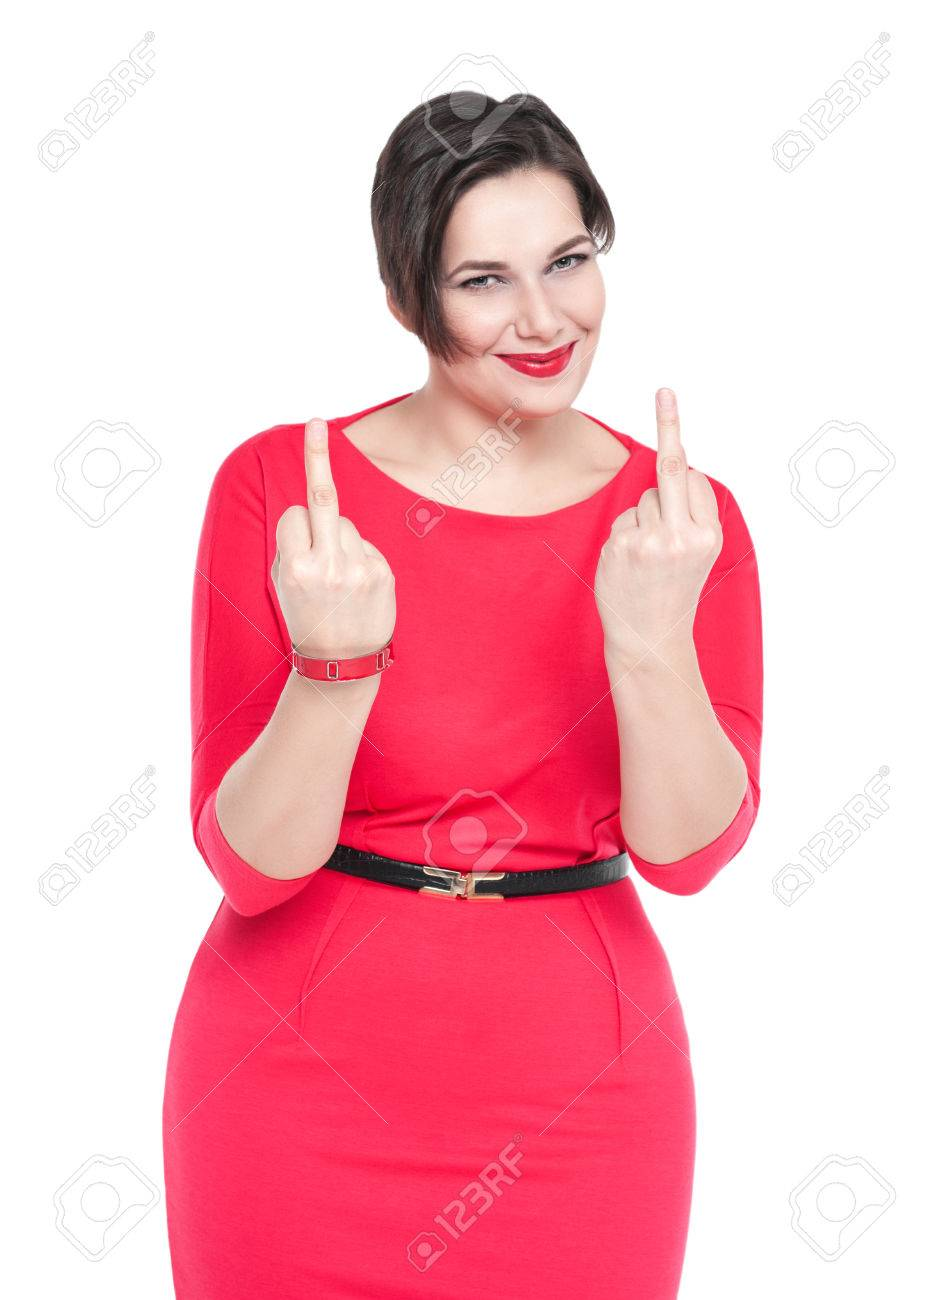 Beautiful Plus Size Woman In Red Dress Showing Middle Fingers ...